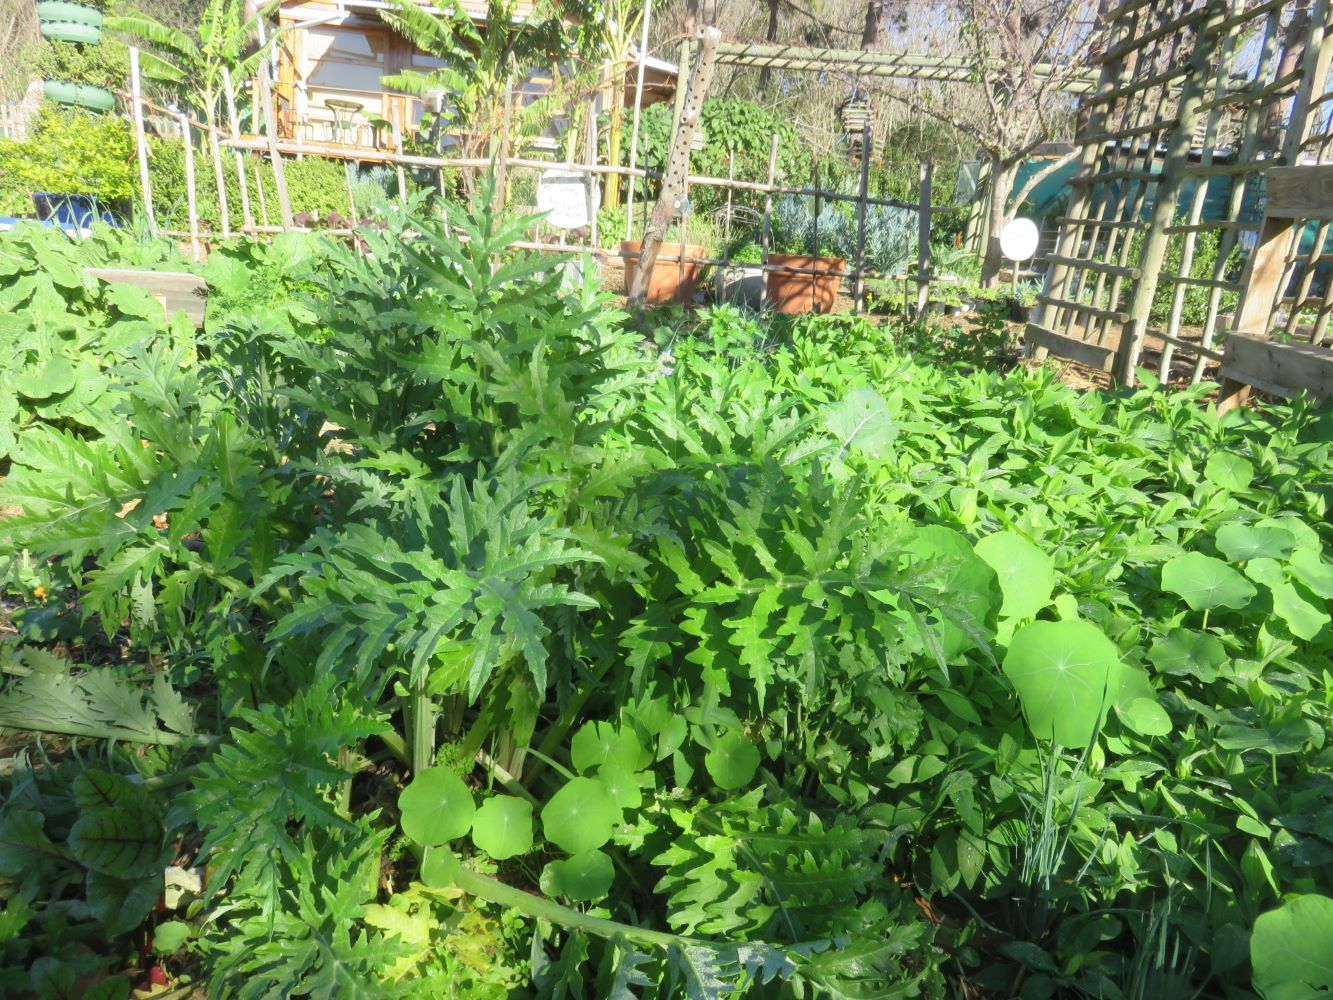 Growing in the best possible soil, partly shaded, the plant is very green, with no buds.